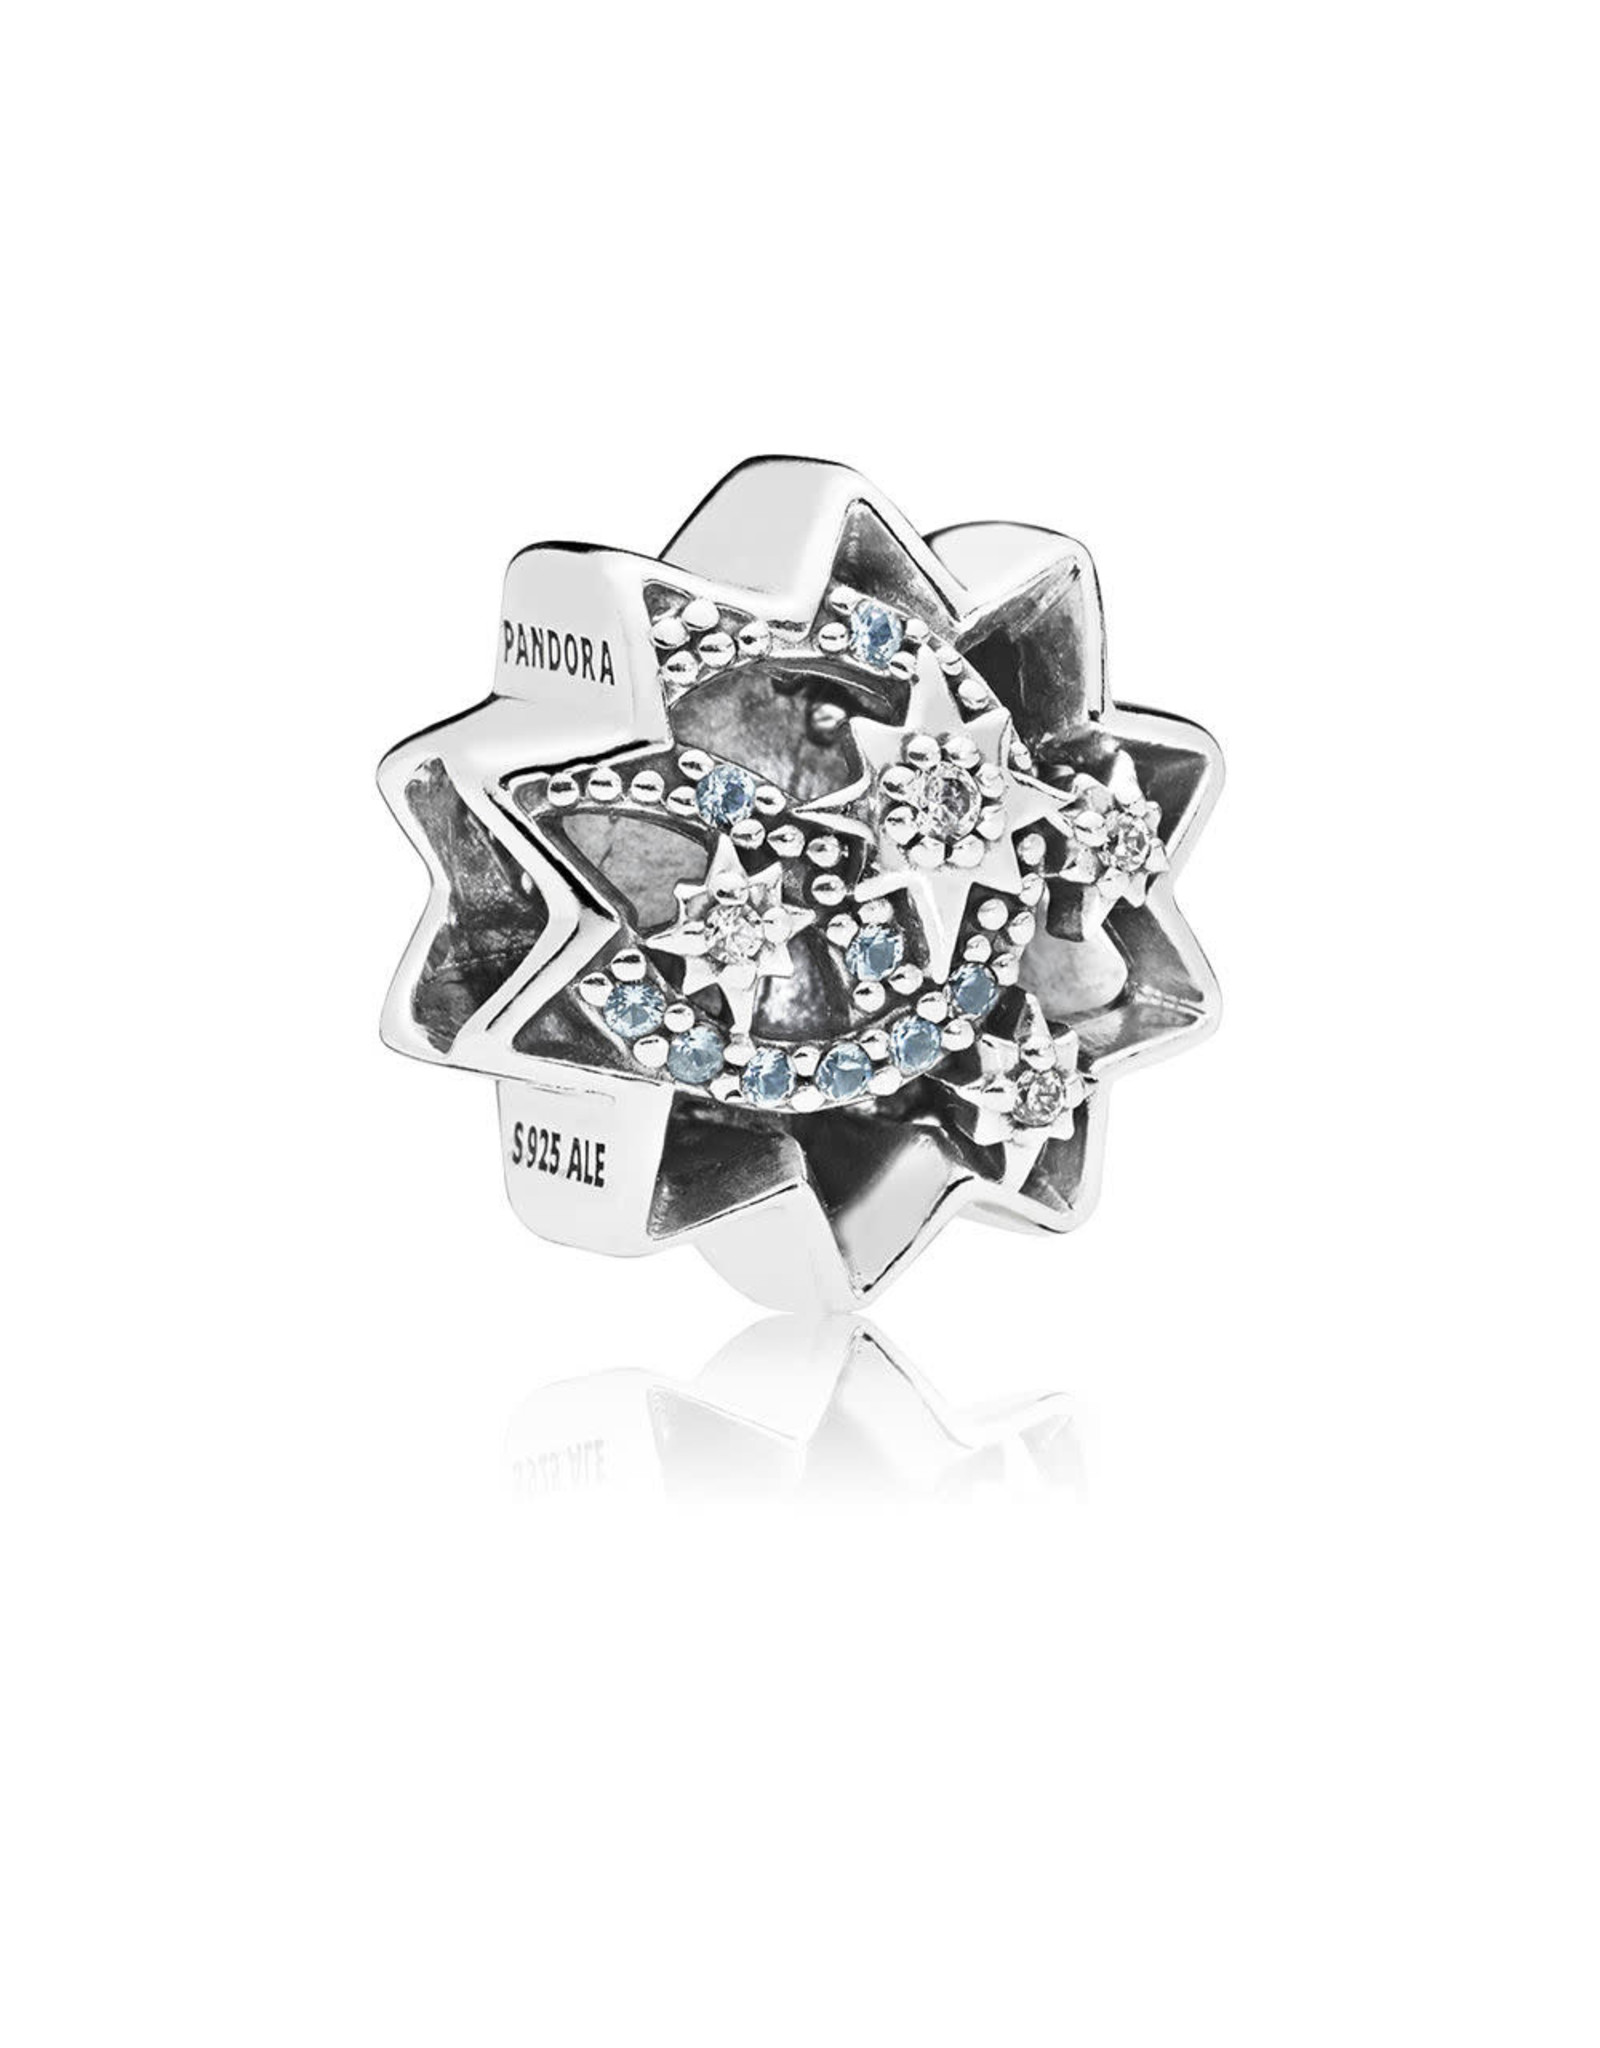 "Pandora Pandora Charm,Disney Star,Light Blue Crystals, Clear CZ""When you wish upon a star"""